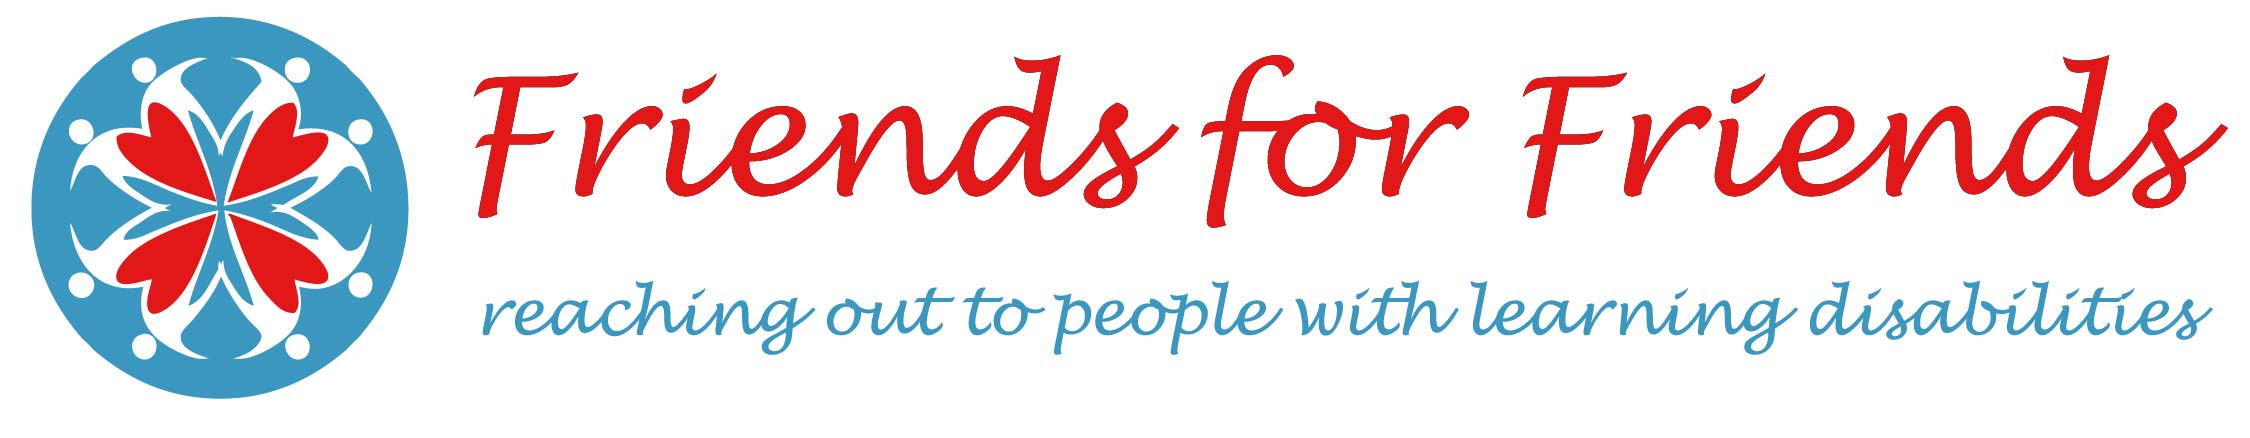 Friends for Friends, reaching out to people with learning disabilities